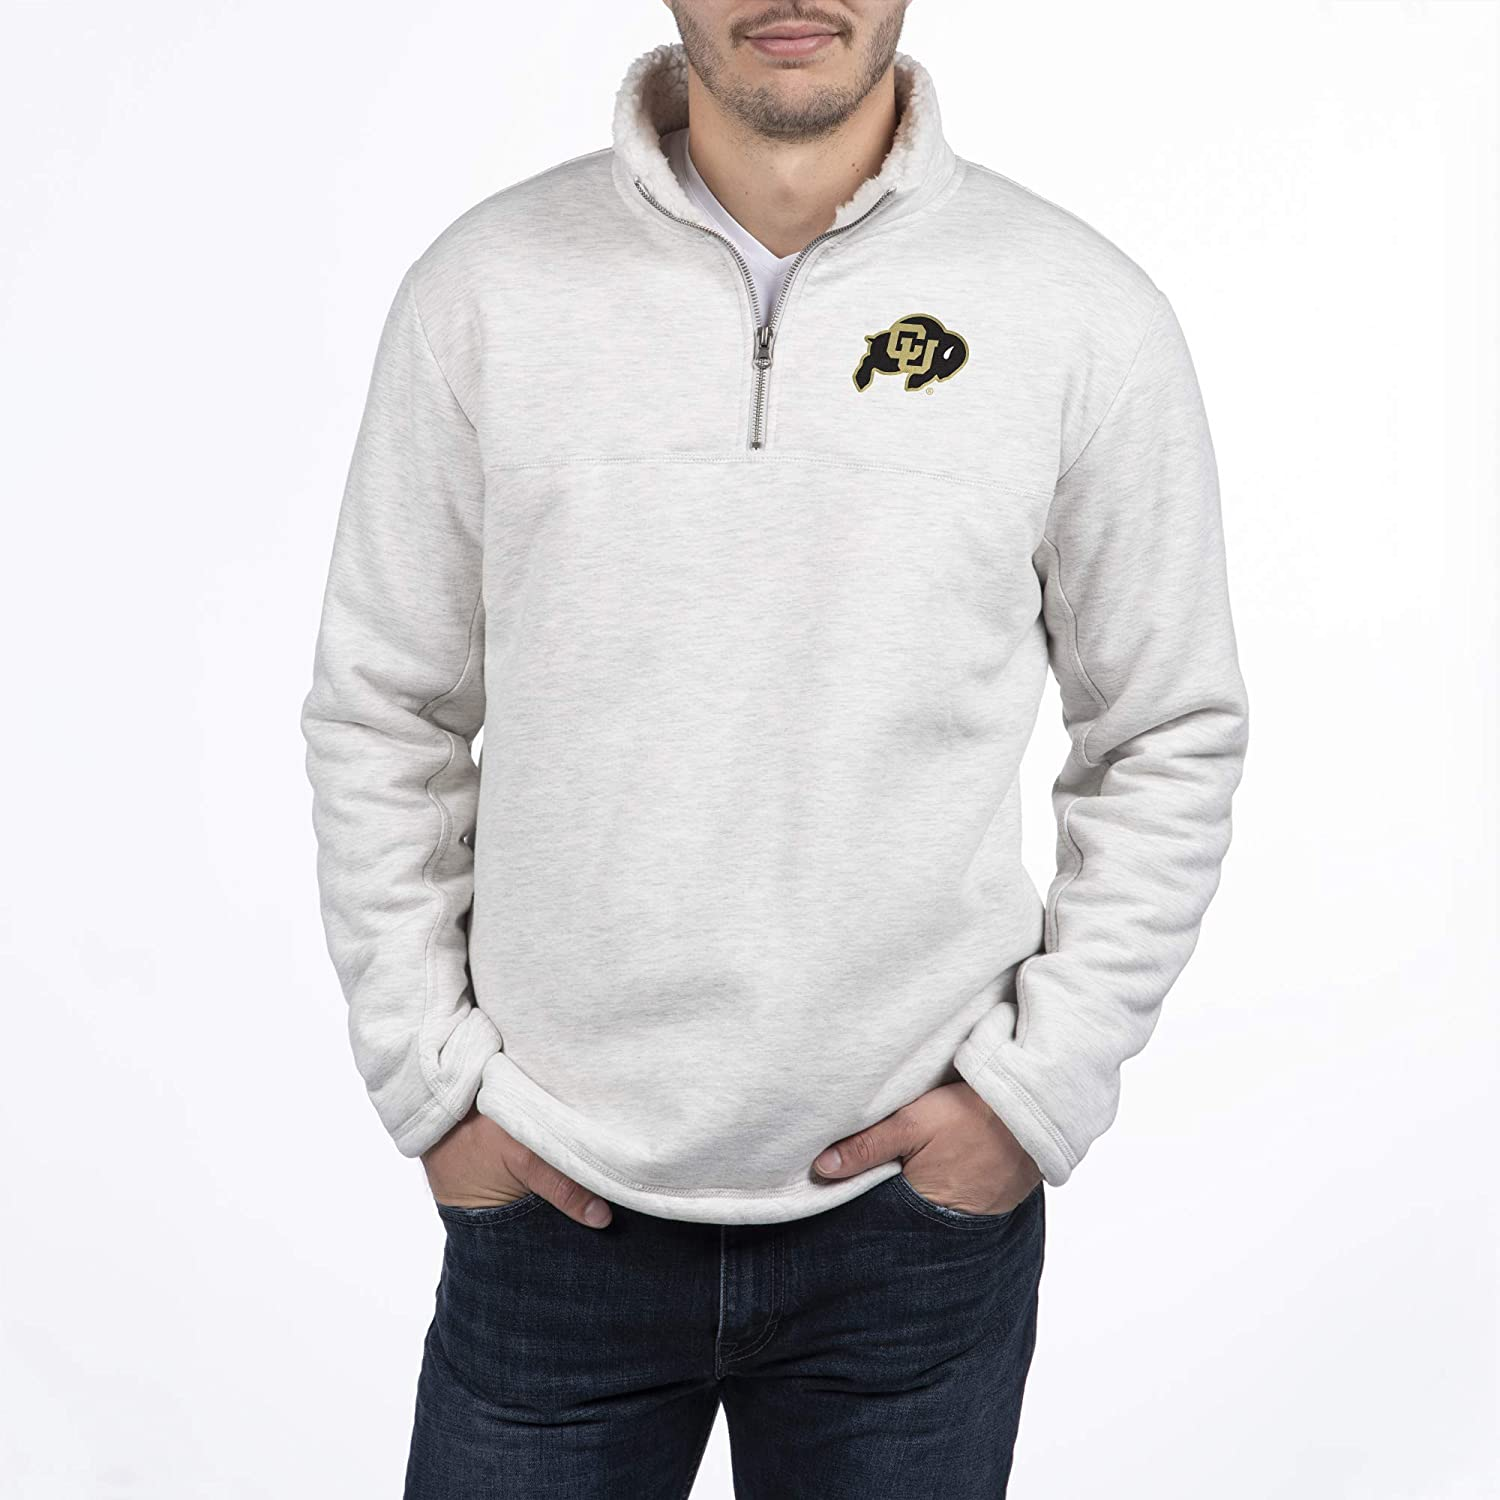 Top of the World Mens Pikes Sherpa Lined 1/2 Zip Pullover